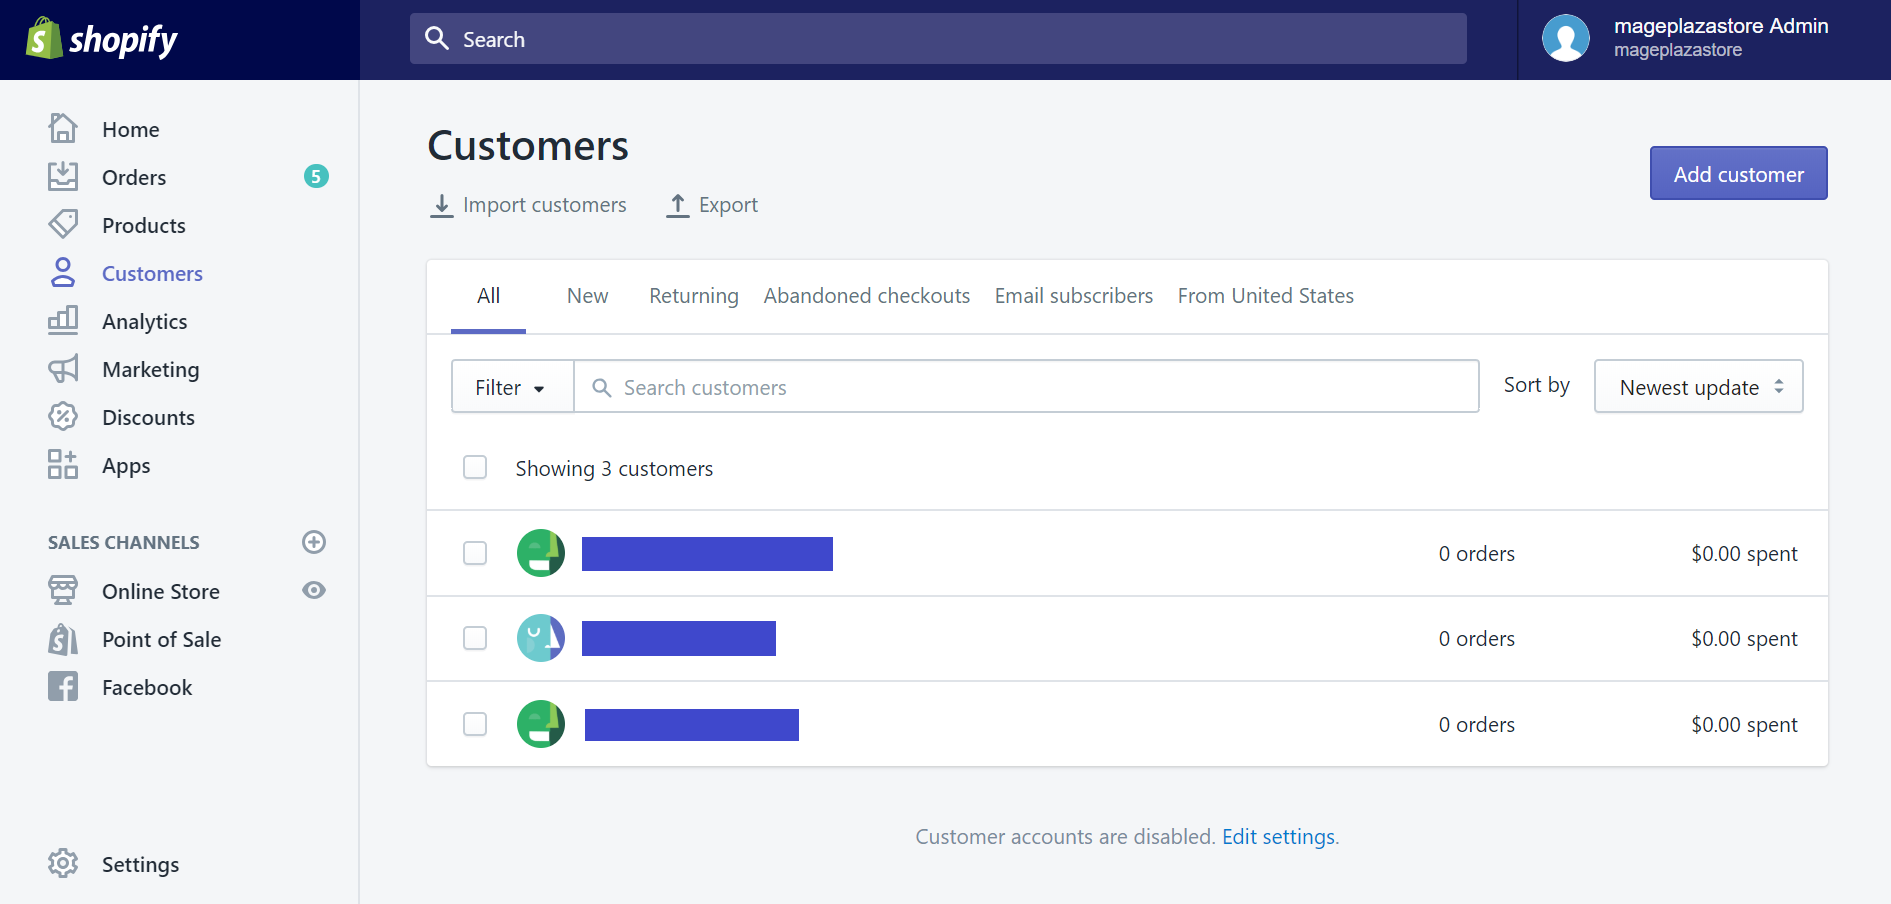 How to import existing customers using the customer CSV